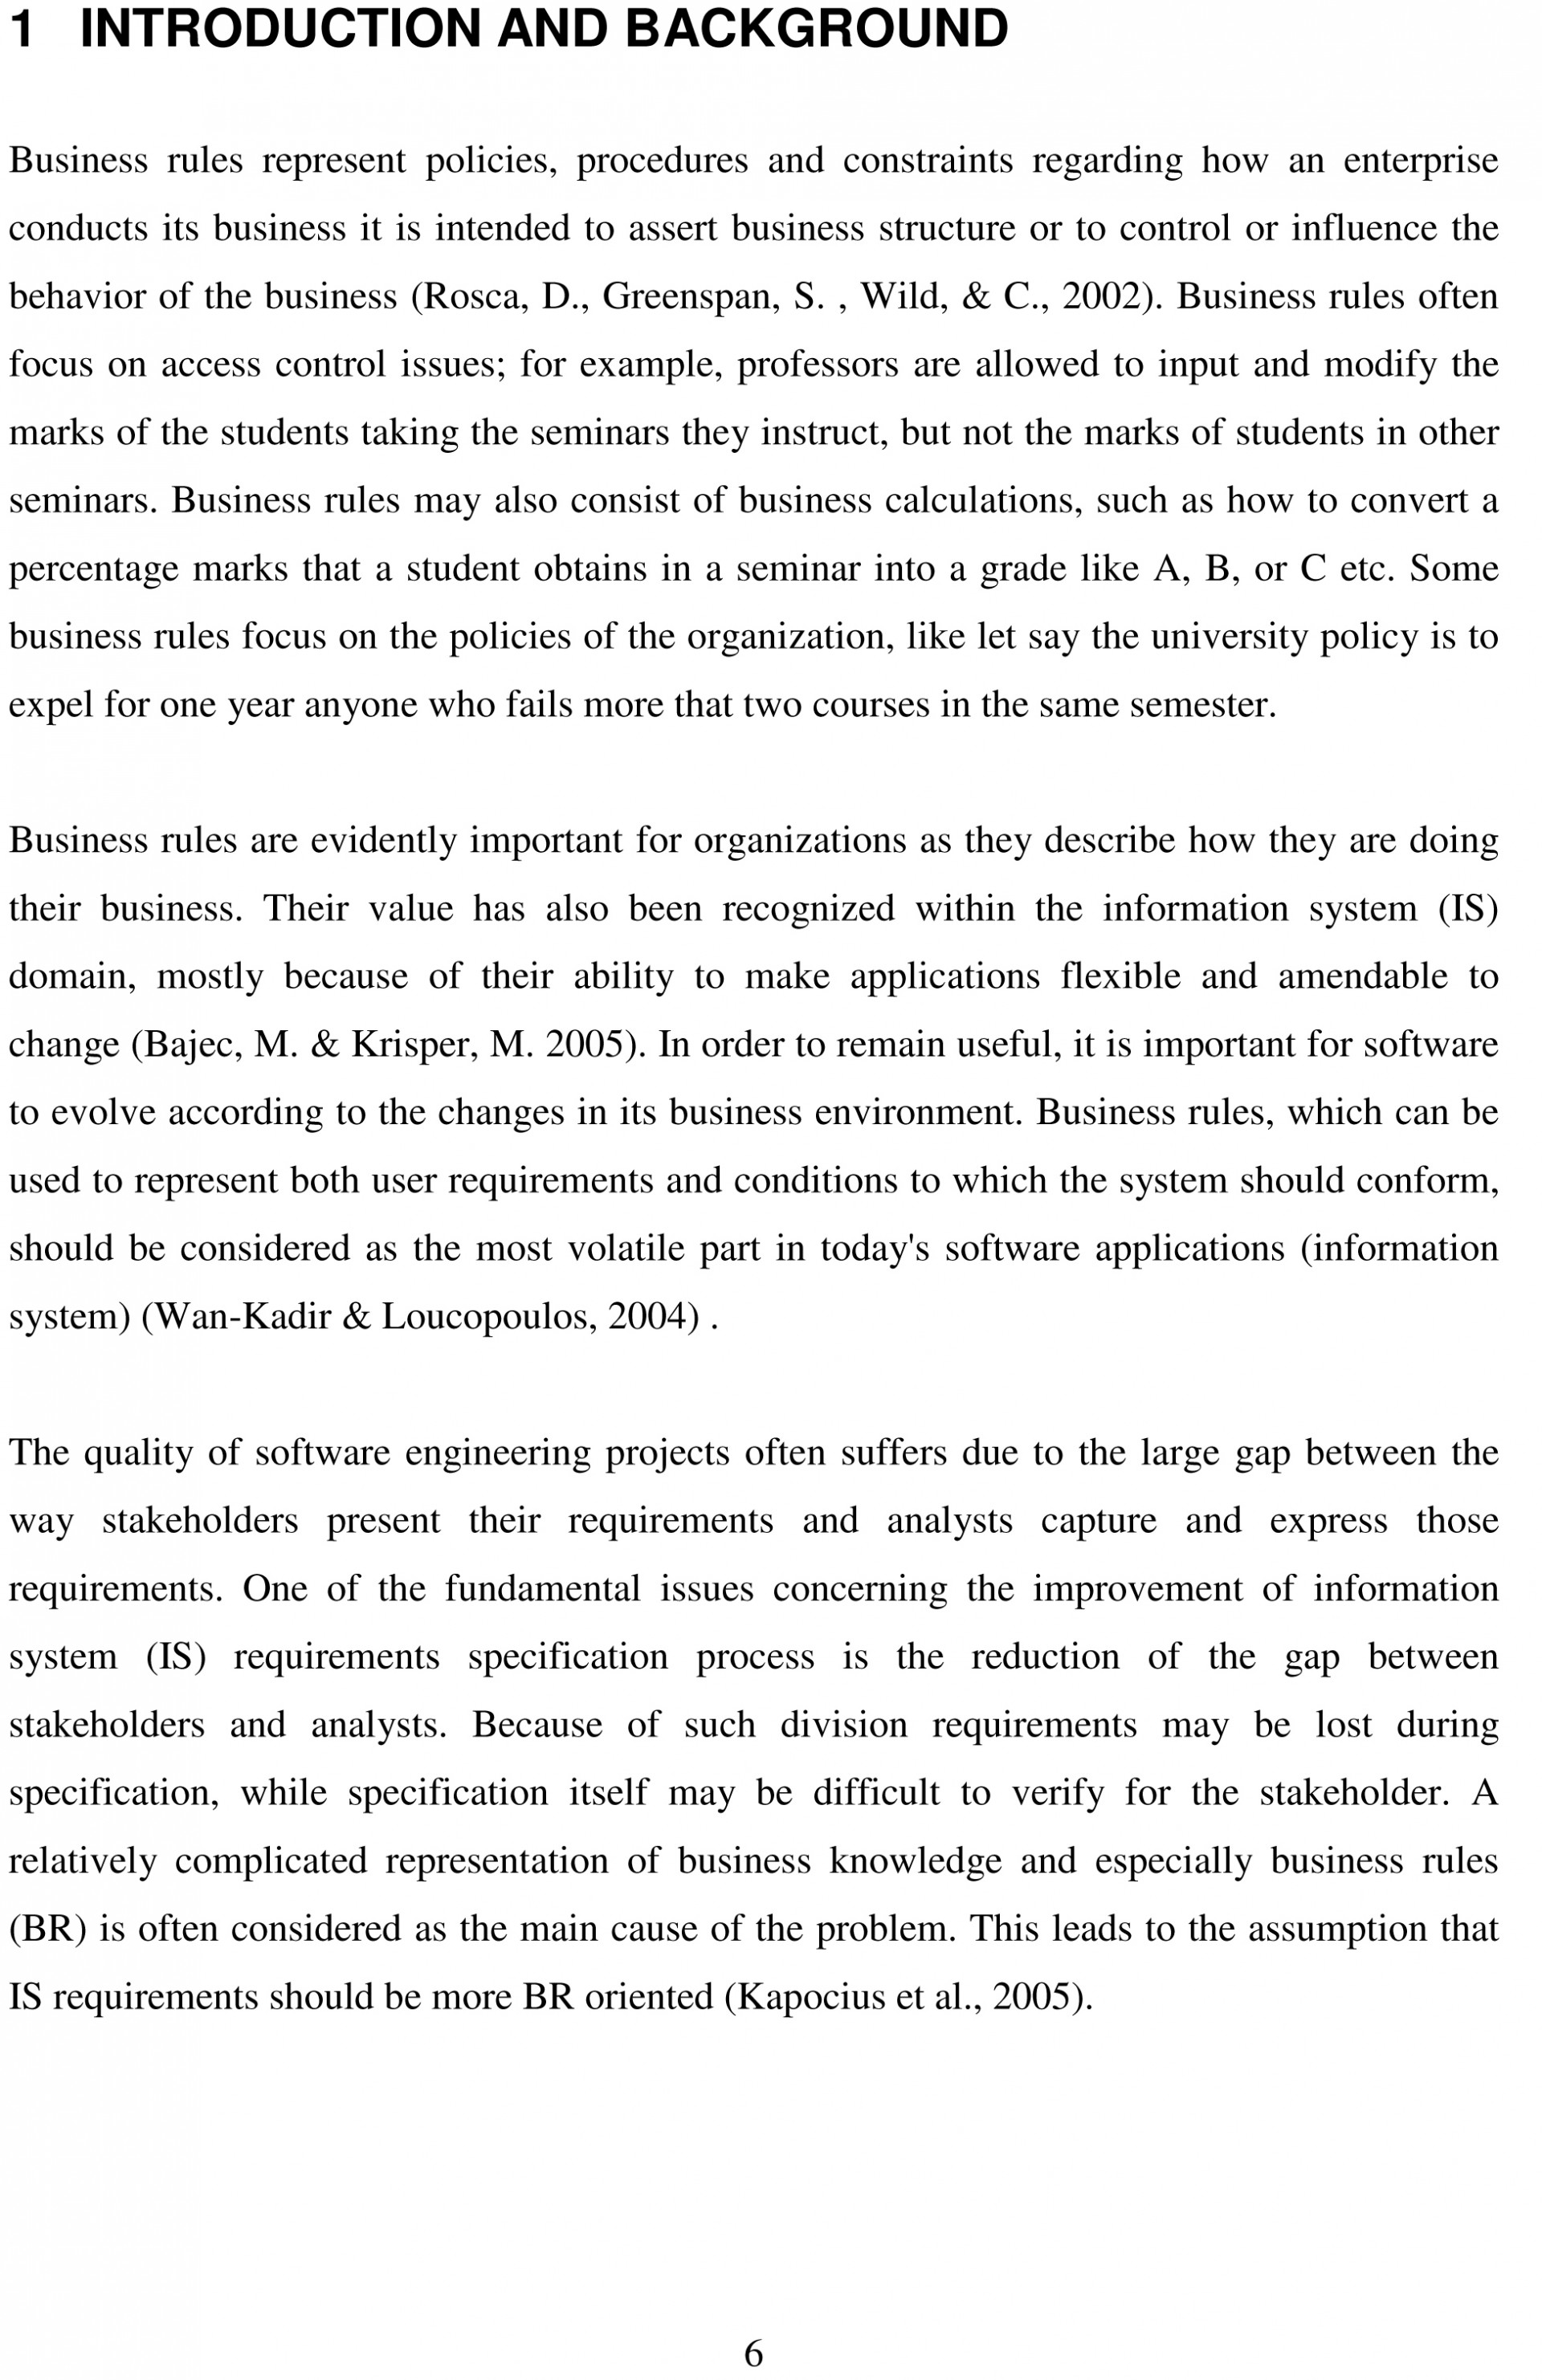 012 Opening Sentences For Essays Thesis Free Sample1 Essay Unique Examples Of Good College Paragraphs Starting 1920